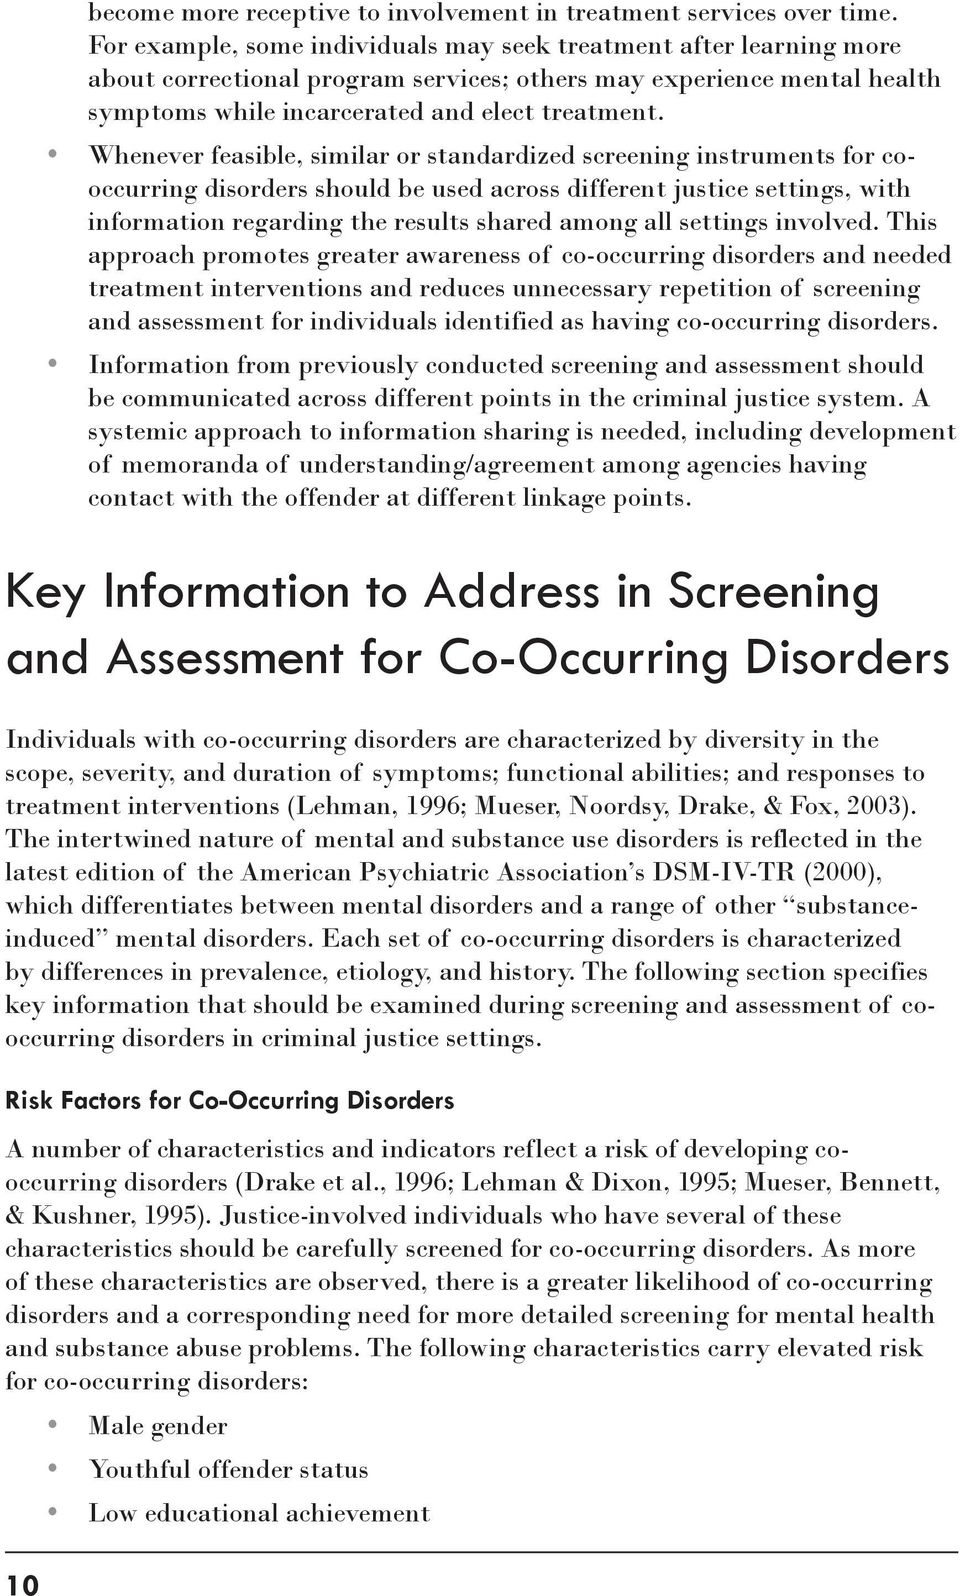 Whenever feasible, similar or standardized screening instruments for cooccurring disorders should be used across different justice settings, with information regarding the results shared among all